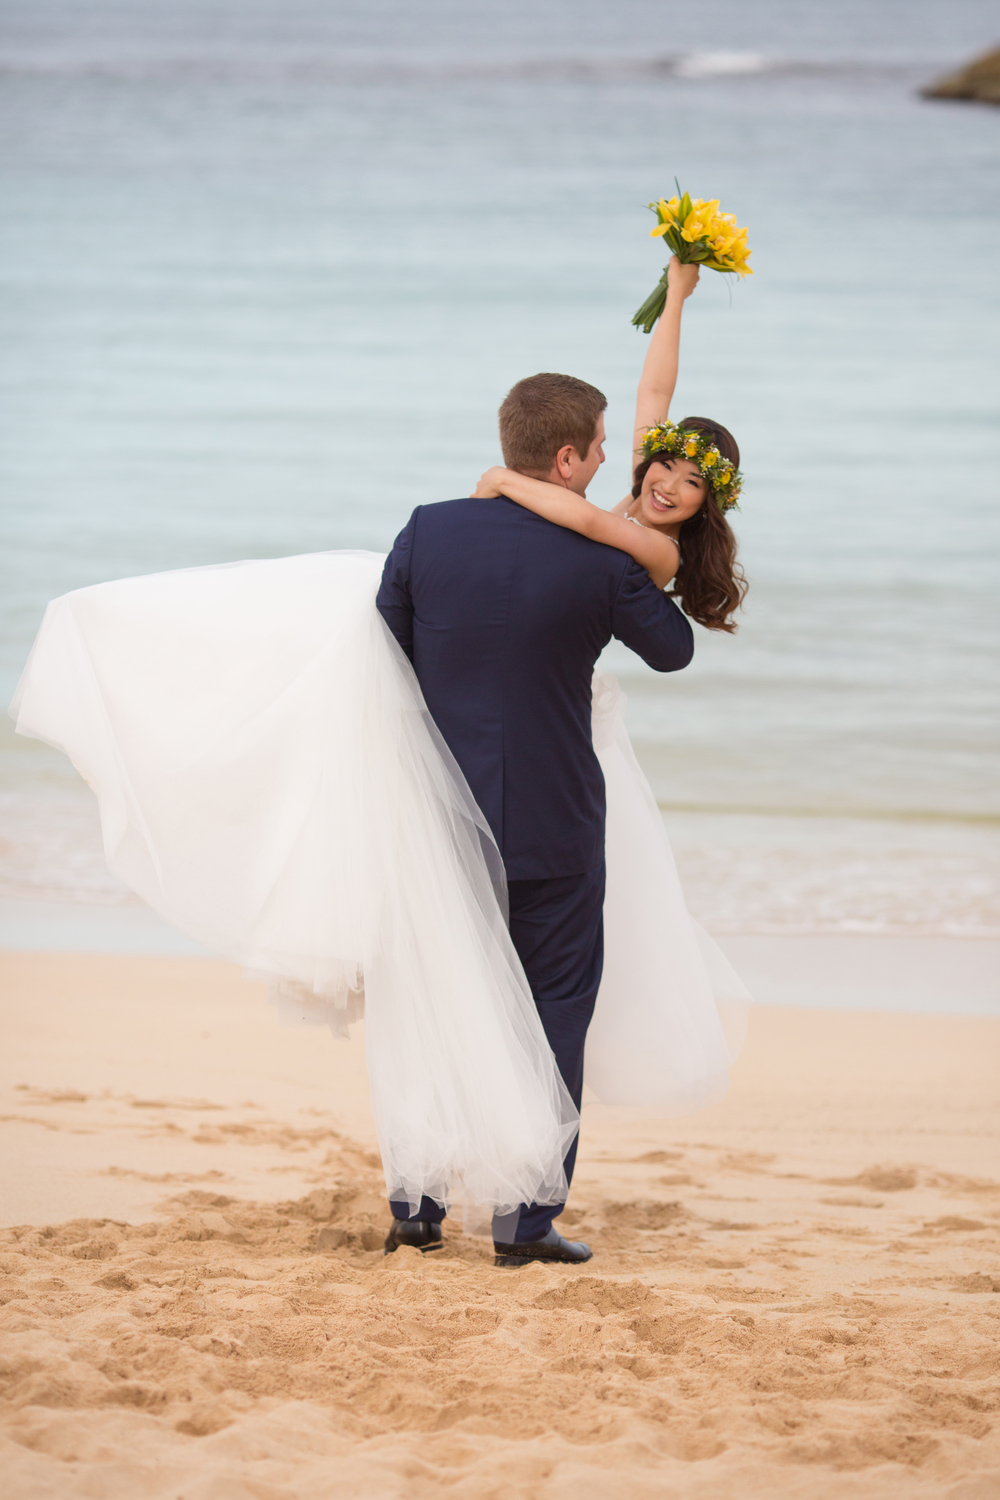 Location:   Aulani, A Disney Resort & Spa   New Featured Weddings:   biancaphotographyhawaii